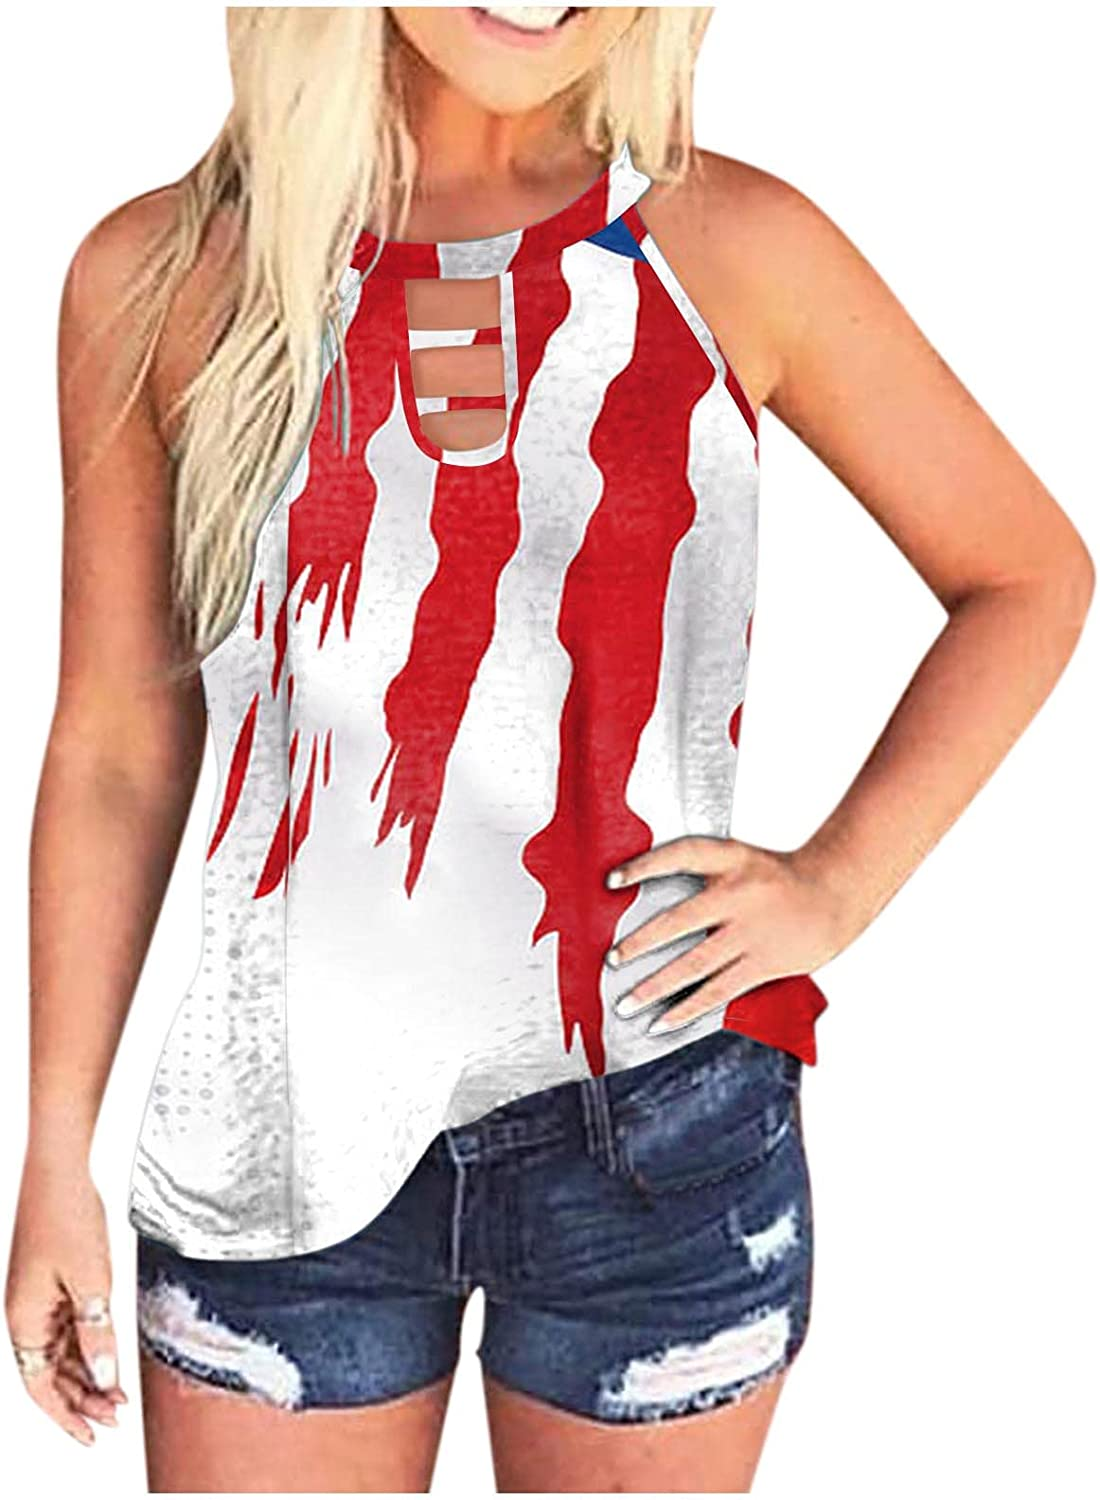 Cute Tops for Women Trendy Summer,Women's Scoop Neck Basic Tank Tops Summer Casual Slim Fitted Sleeveless Tie Dye Camis Tee Shirts